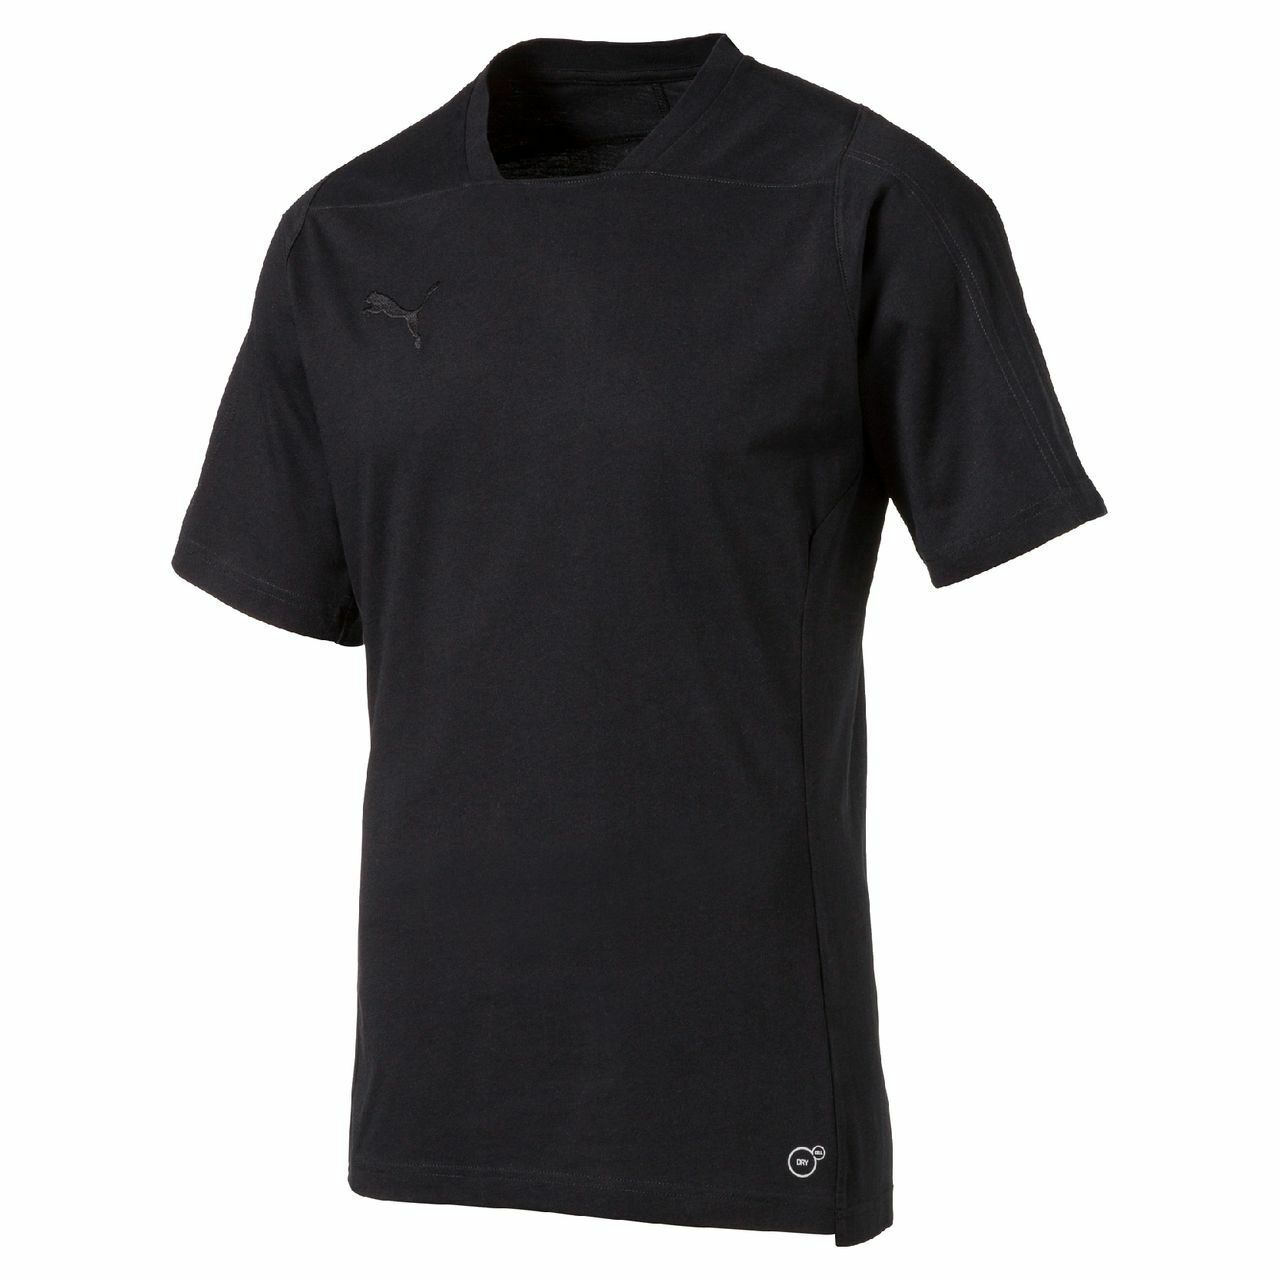 Puma Final Casuals T-Shirt - Men's T-Shirt